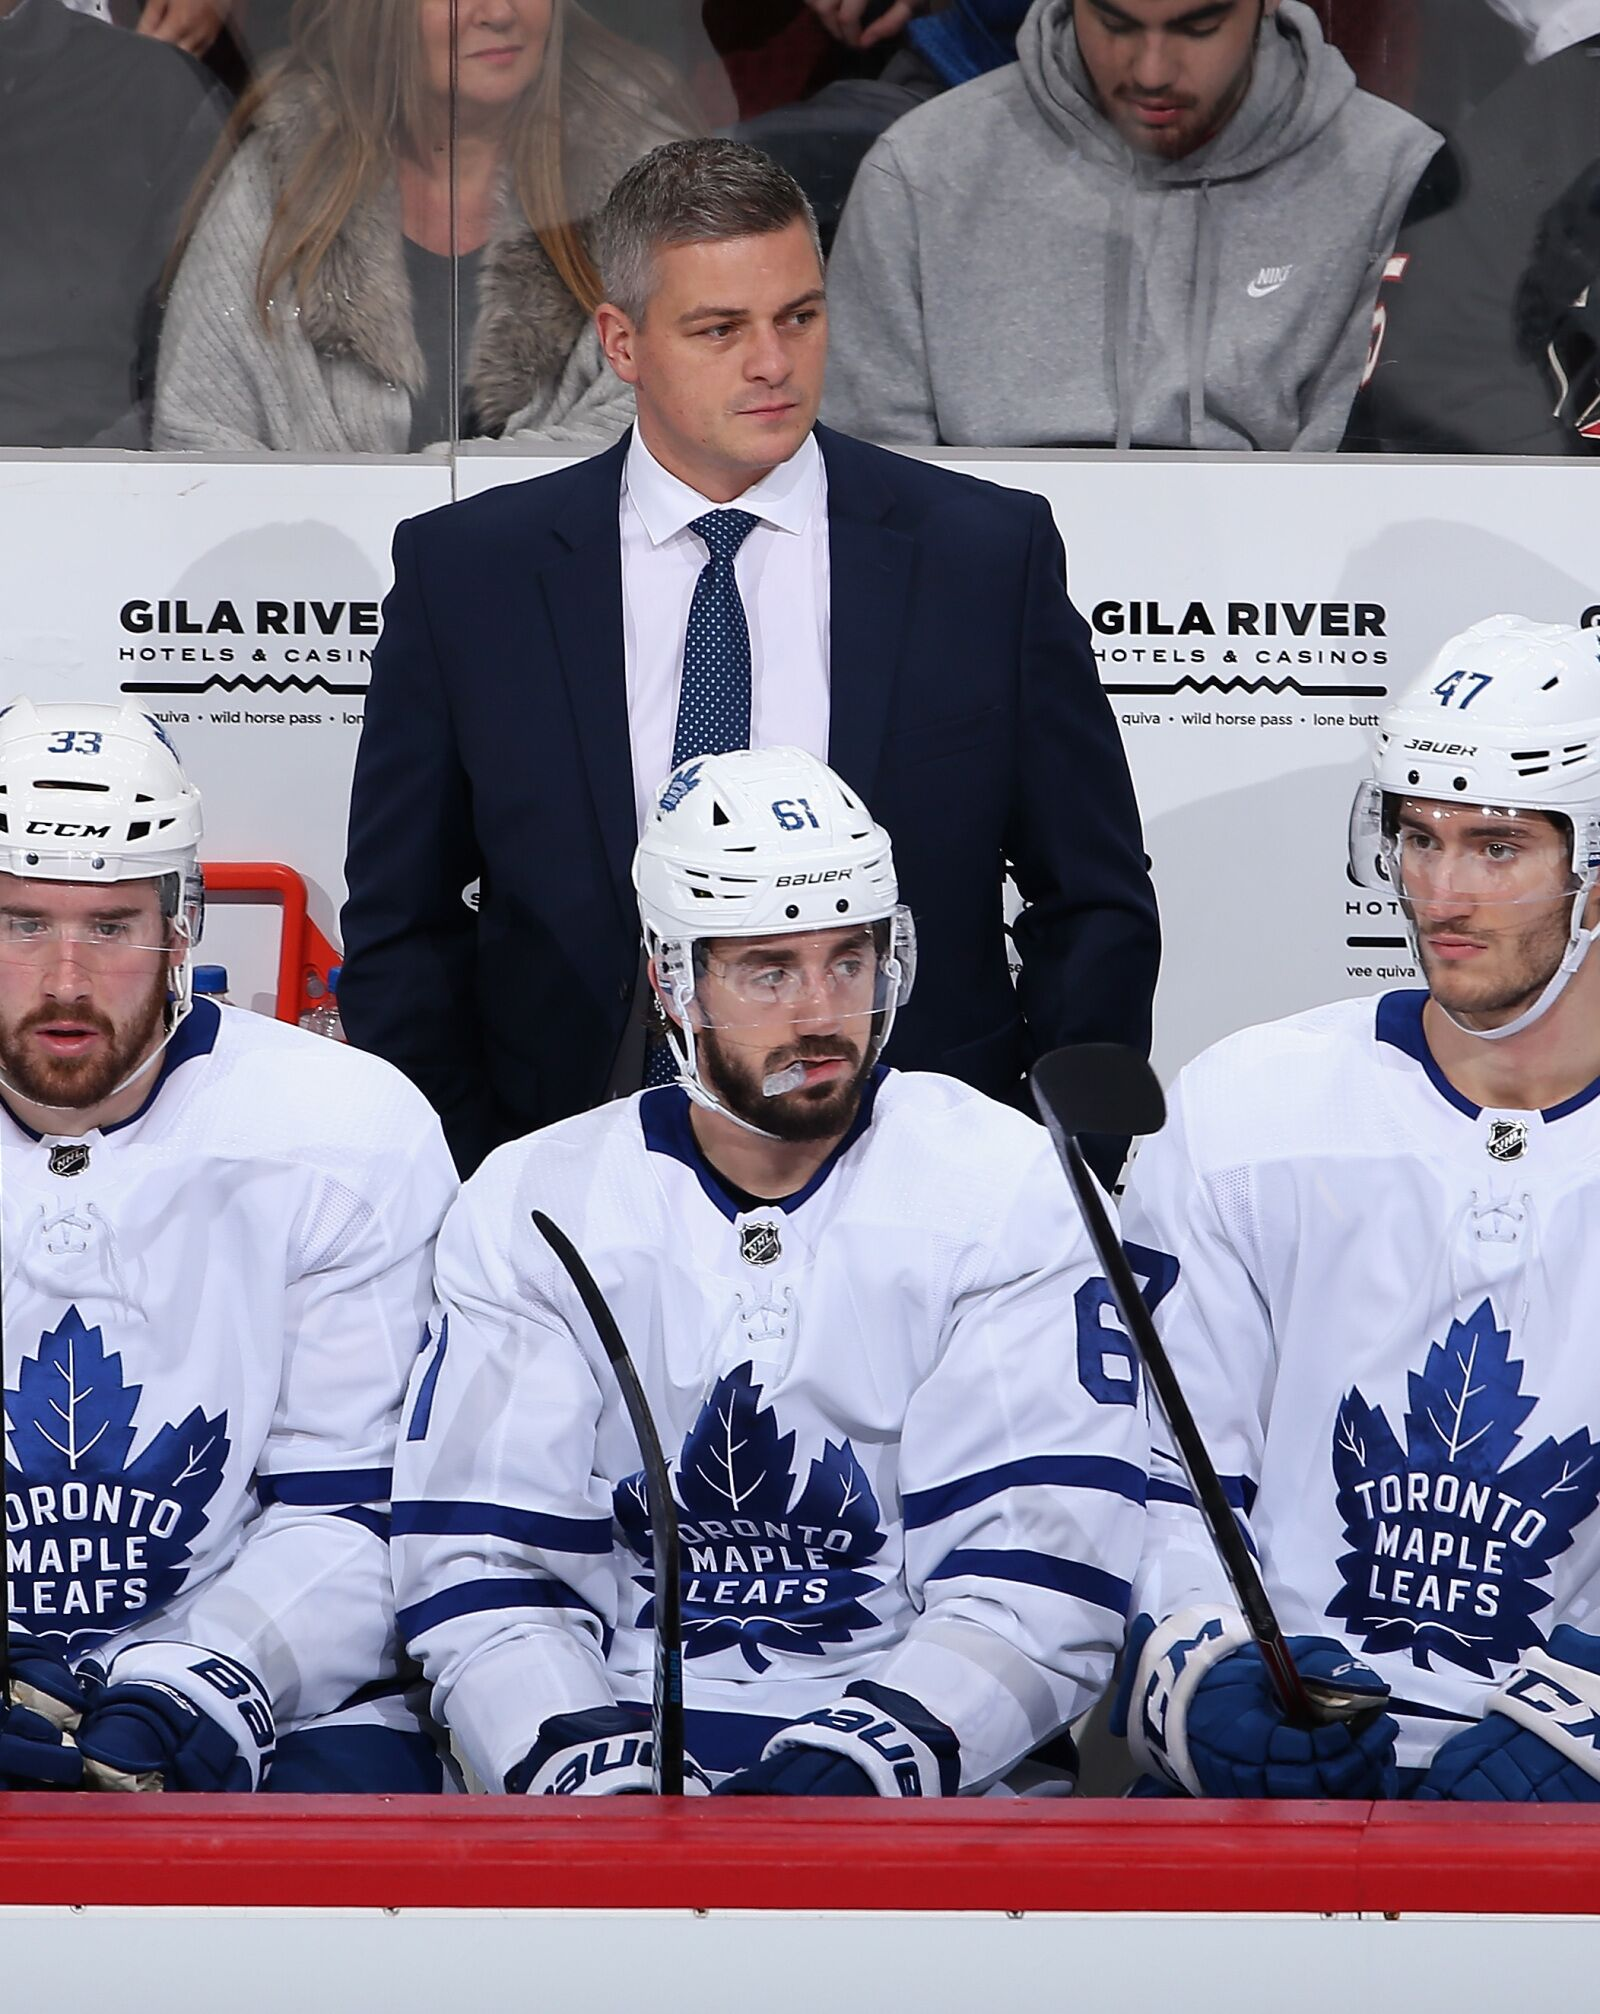 Toronto Maple Leafs: One of the Problems With the New Coach's System